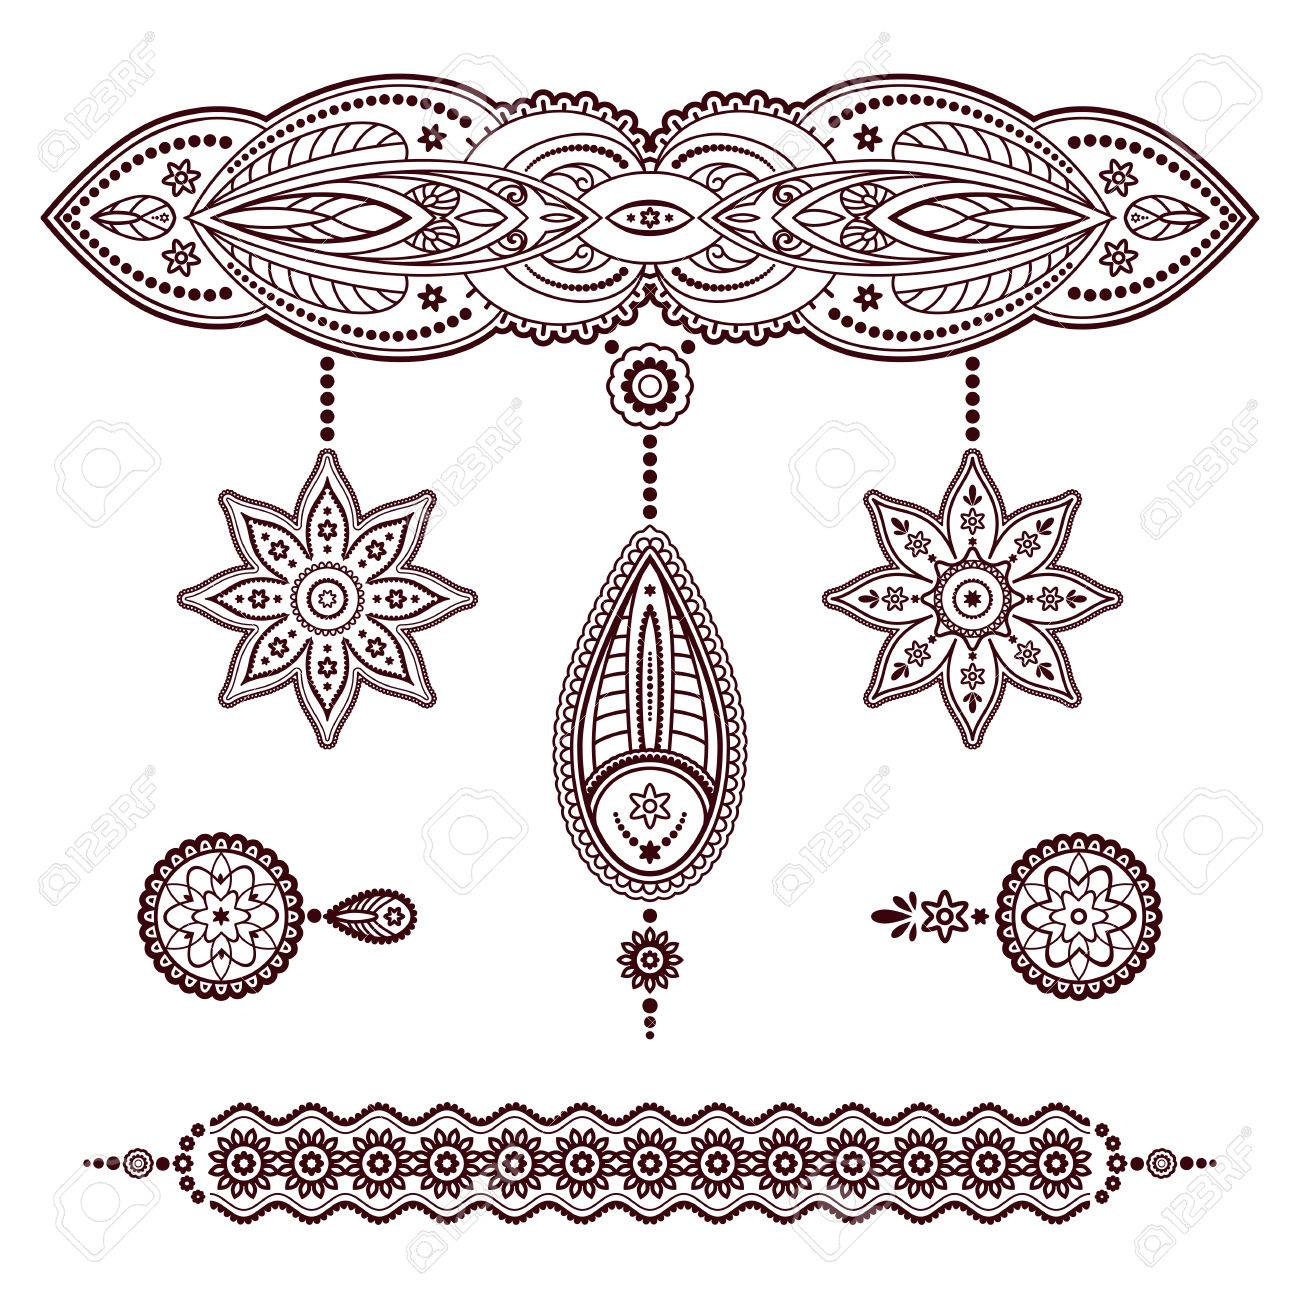 Set Of Henna Tattoo Templates, Decorative Doodle Elements, Pendant ...